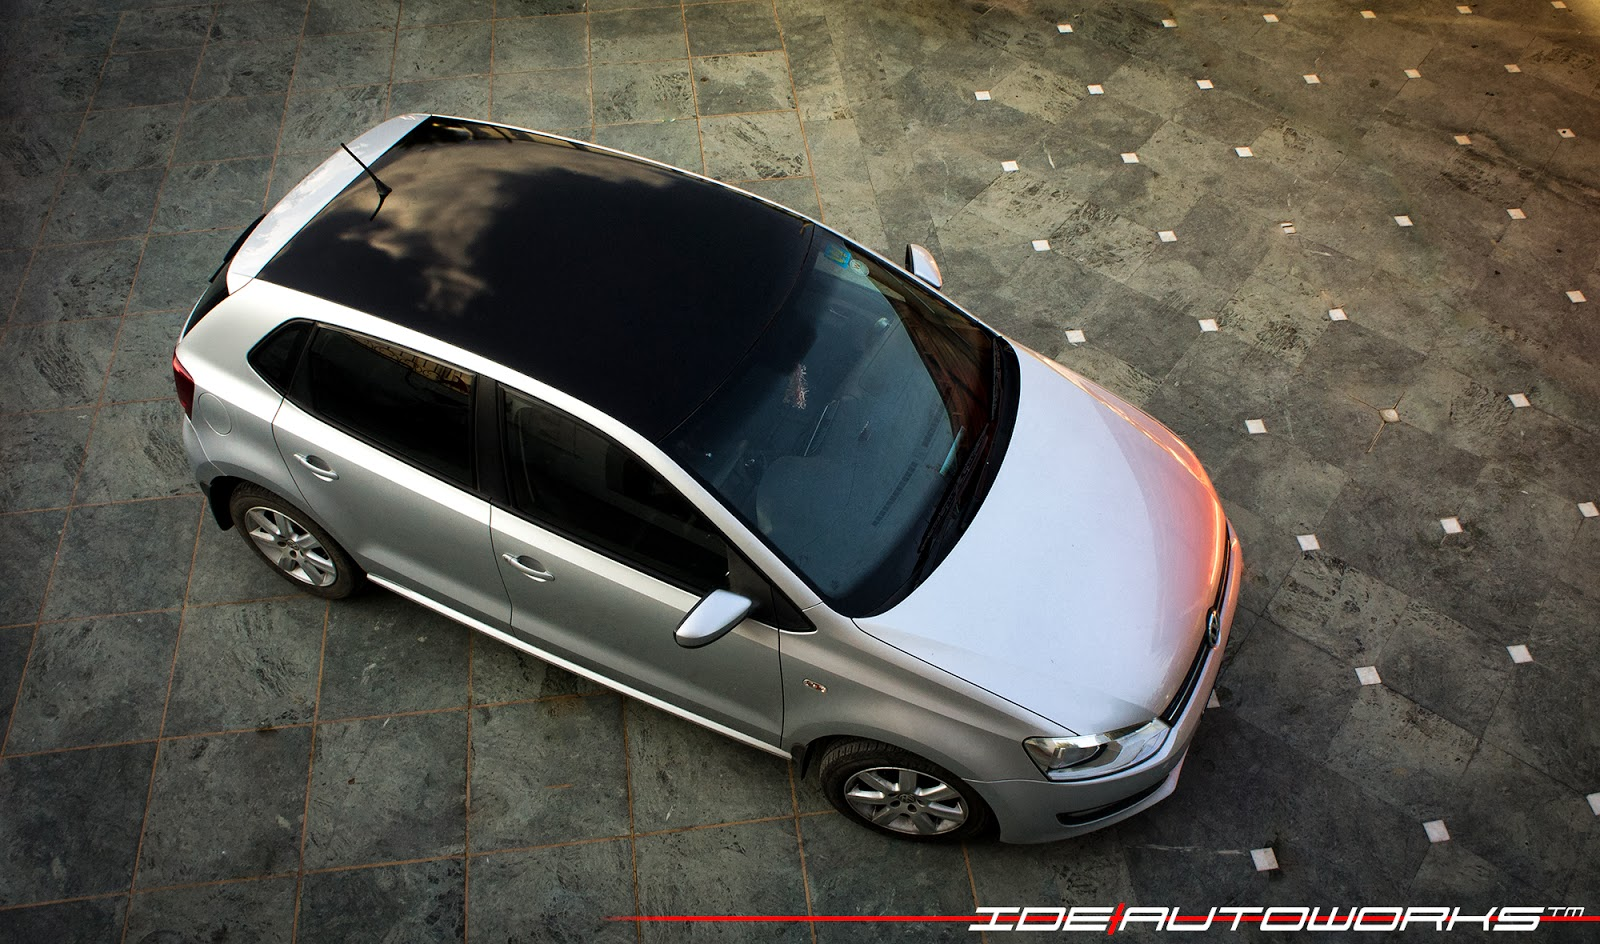 Another Vw Polo With Gloss Black Roof Wrap Ide Autoworks